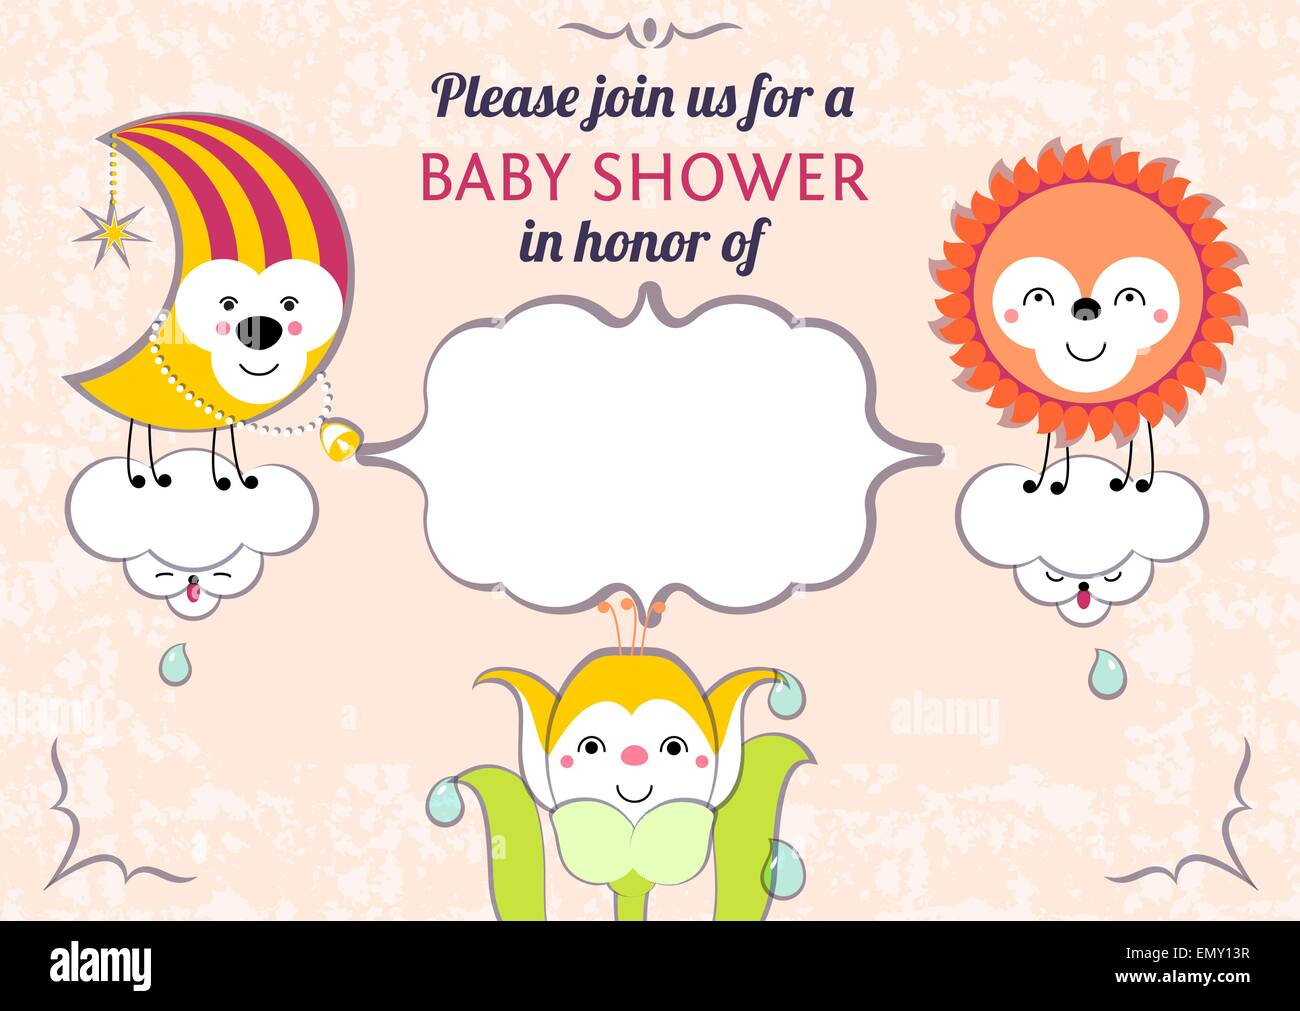 Baby Shower Invitation Card Editable Template Funny Cute Kawaii